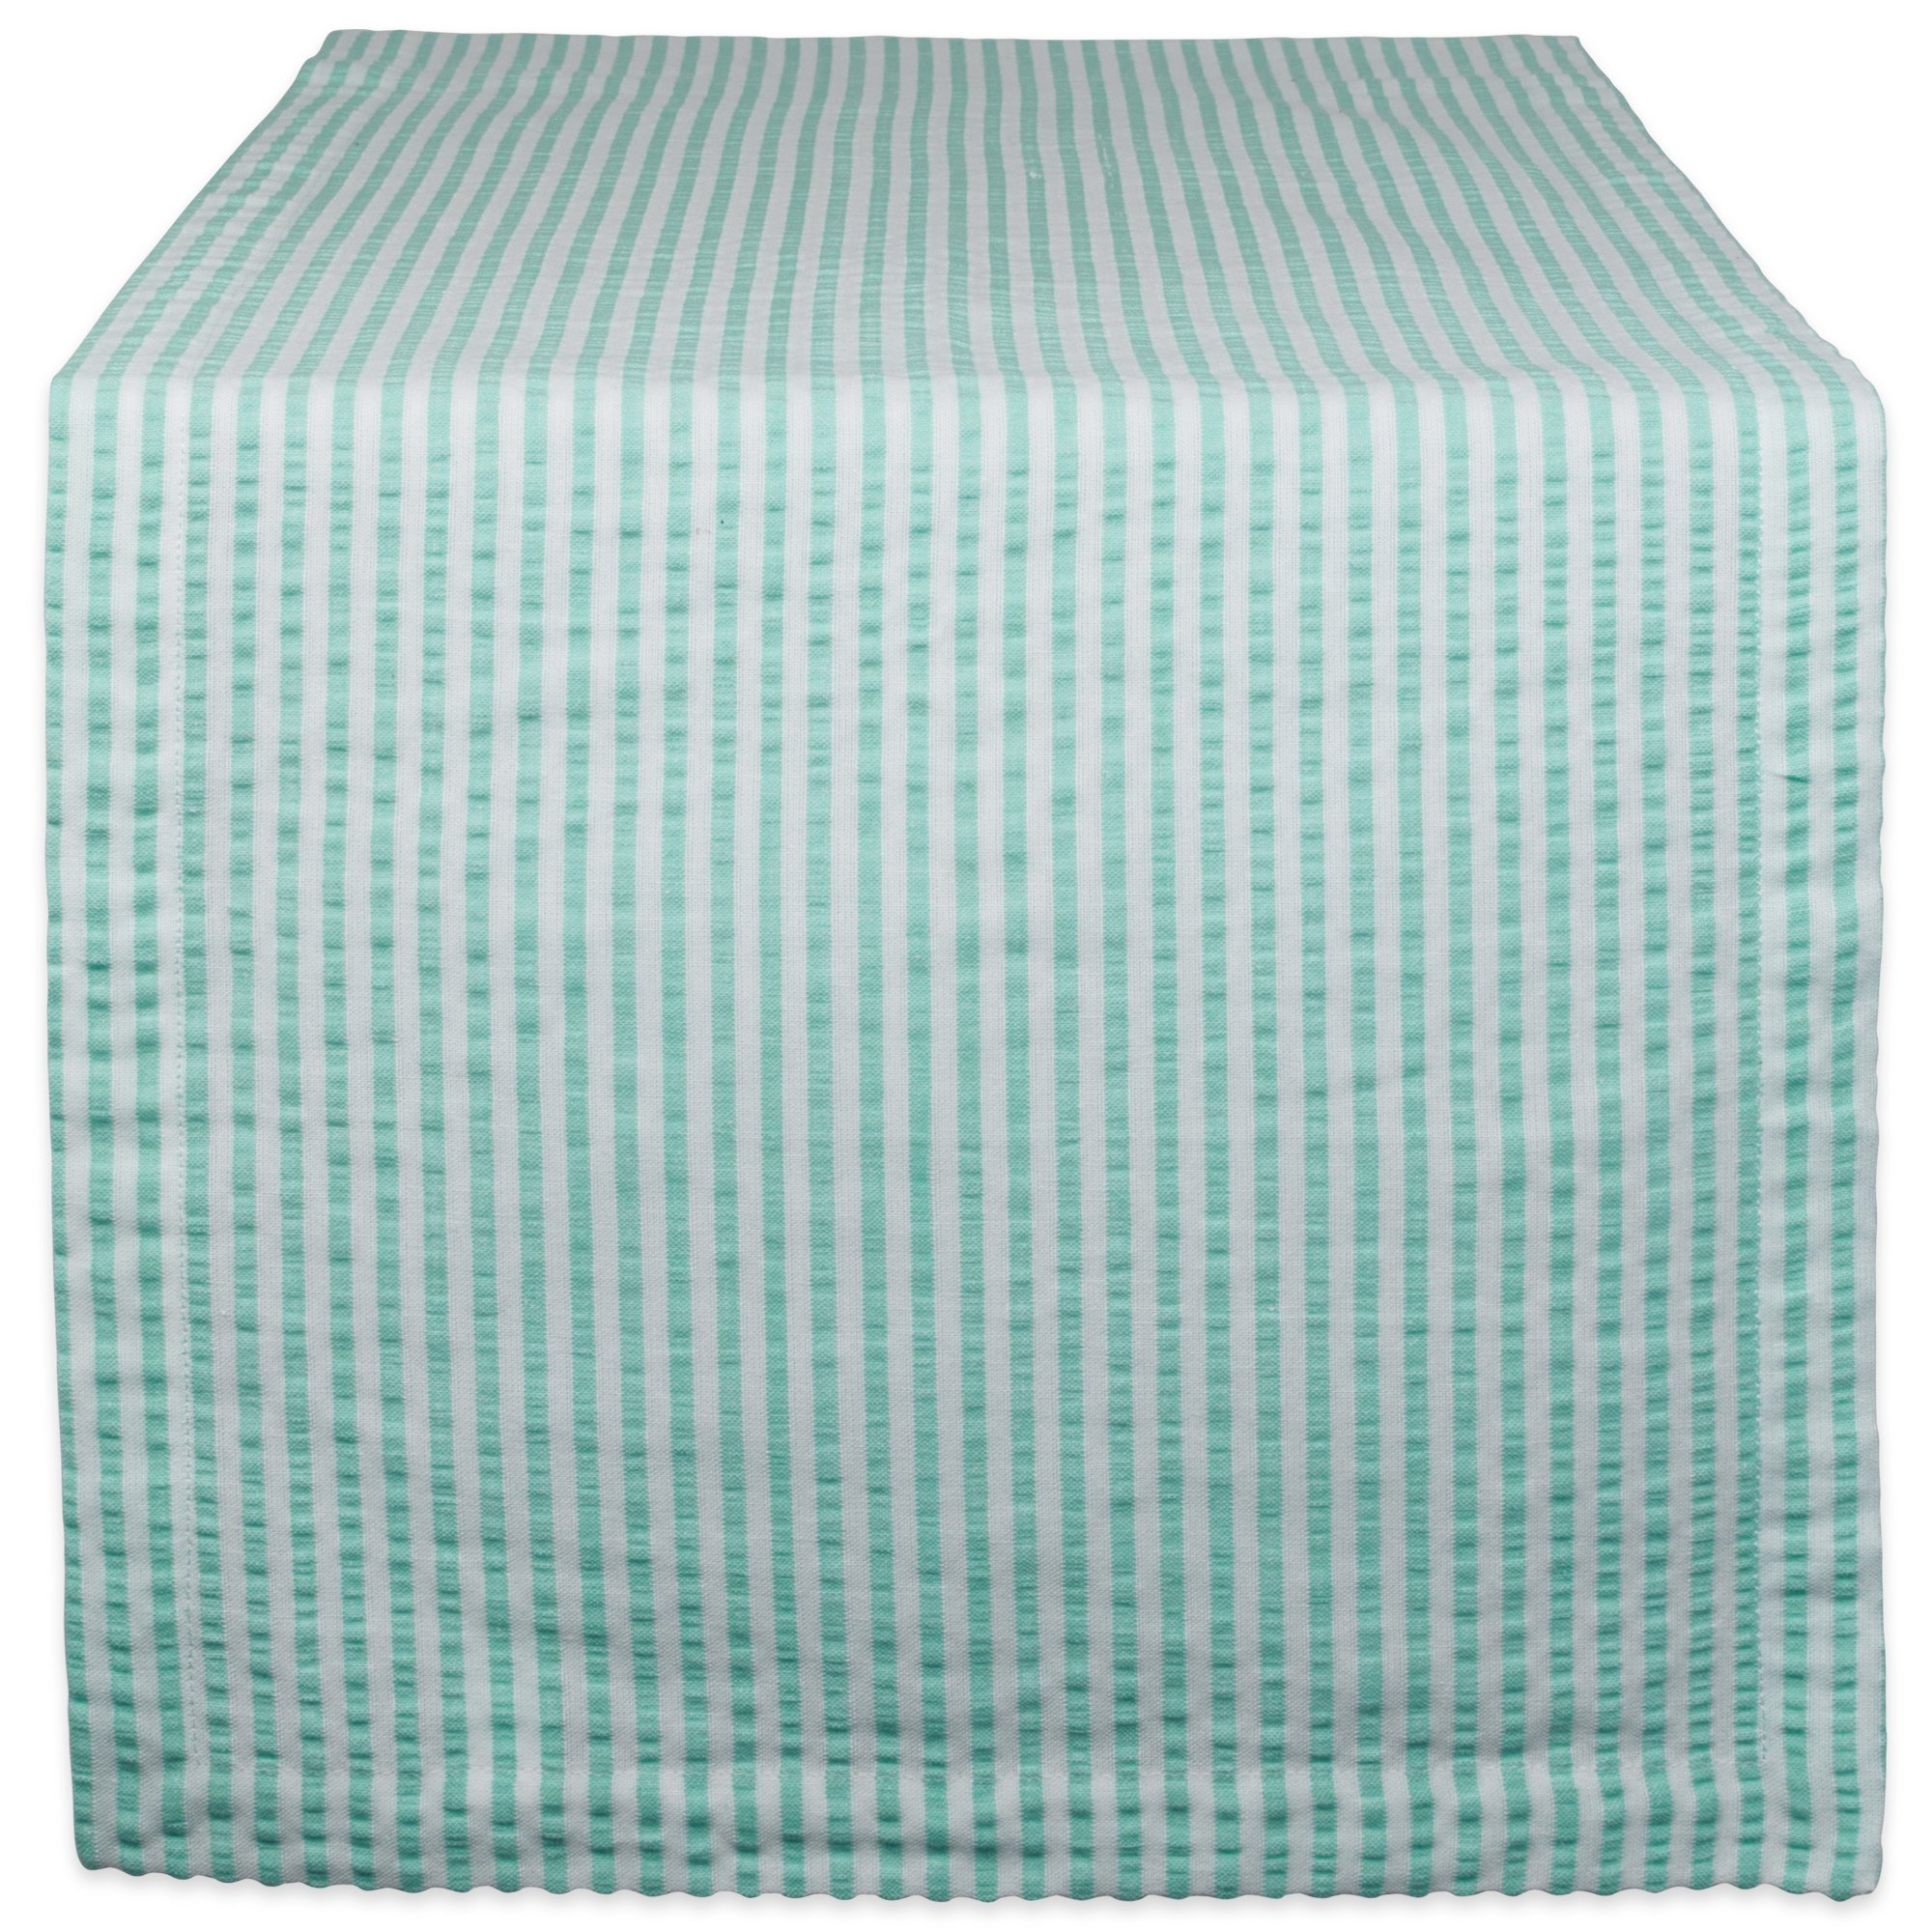 DII Cotton Seersucker Striped Table Runner Dinning Room, Entryway Weddings, Parties Everyday Use, 14x108, Aqua Blue White by DII